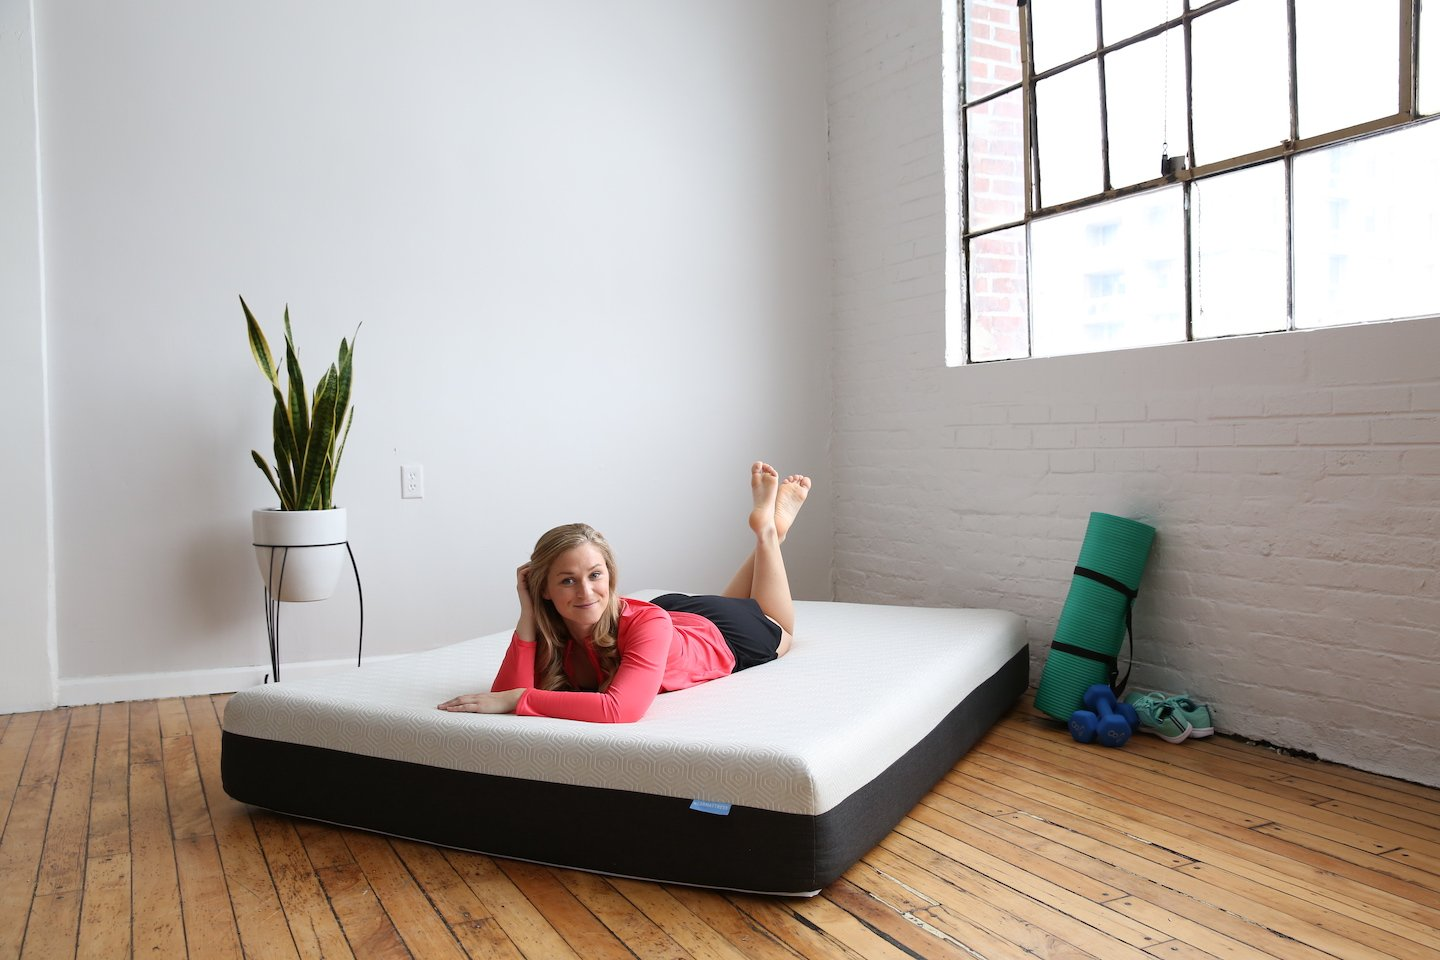 BEAR MATTRESS - Twin XL Mattress made with Celliant Technology - Engineered to Improve Athletic Performance, Sleep Quality, Health & Wellness - Over 20,000 Satisfied Customers